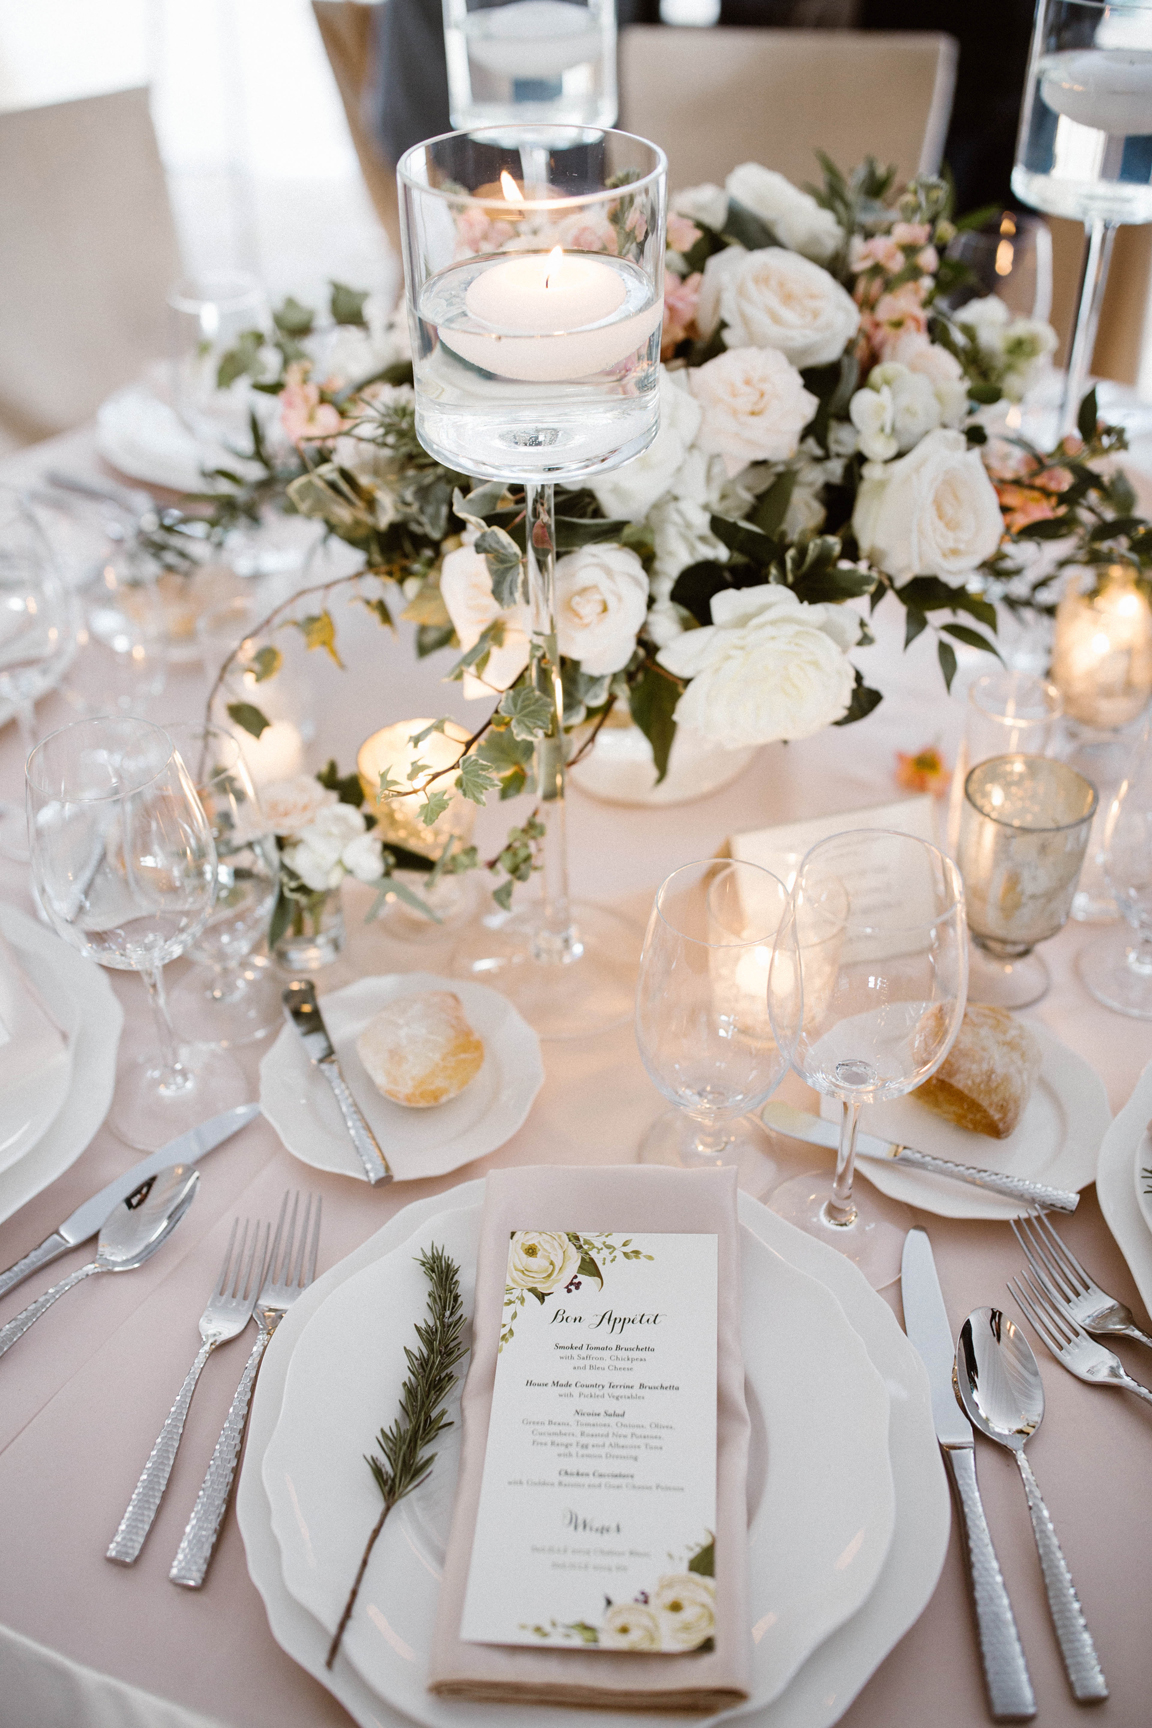 DeLille+Cellars_The+Chateau_Woodinville_2017_Weddings+In+Woodinville121.jpg